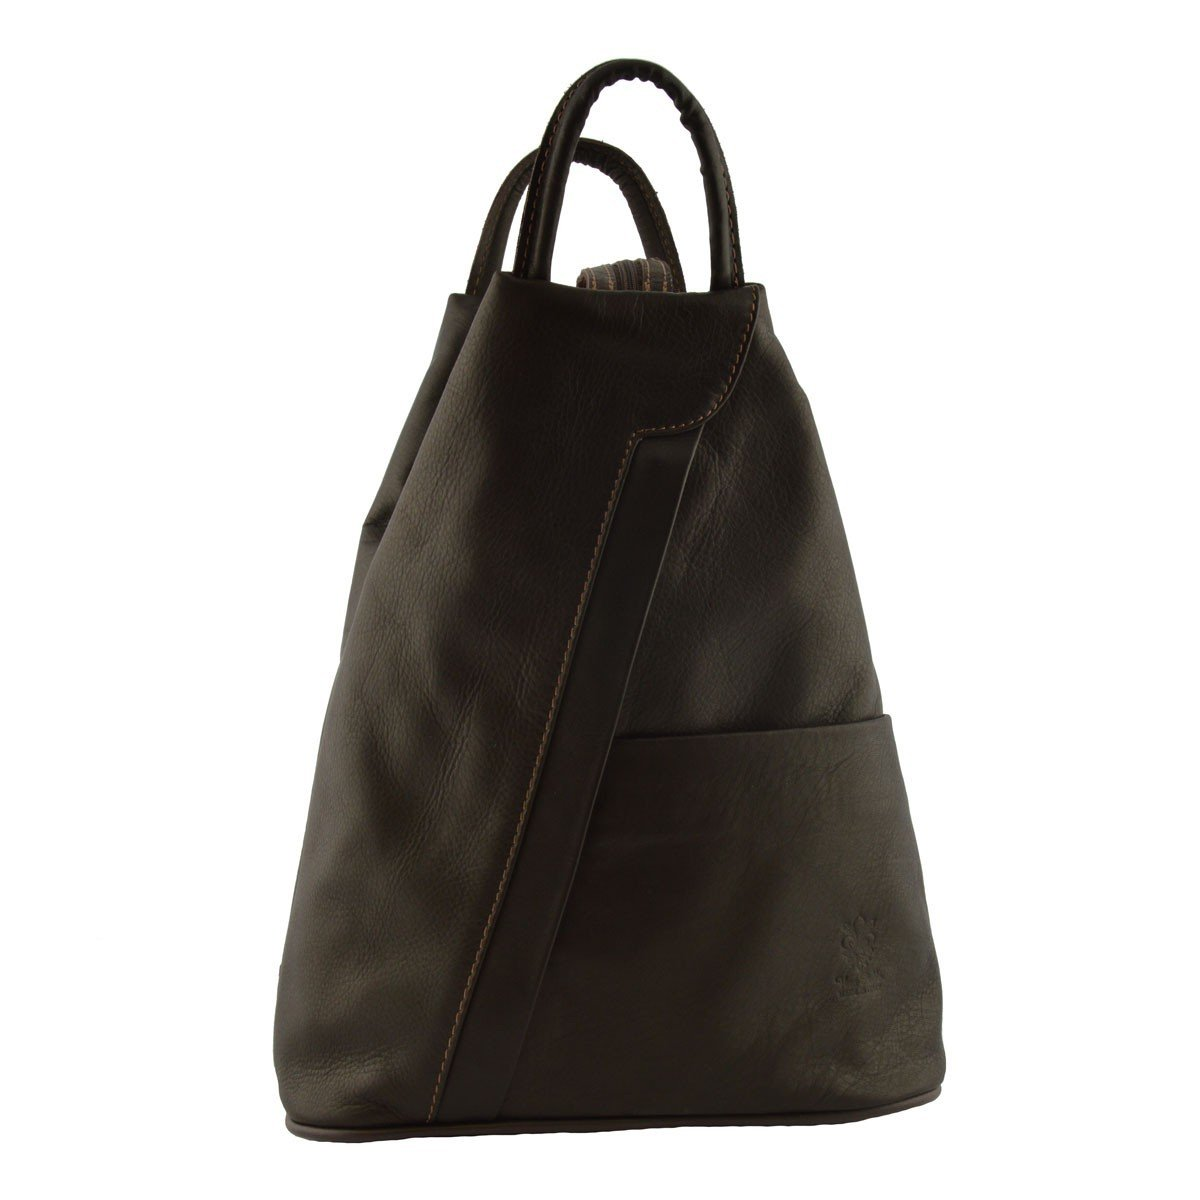 Made In Italy Woman Leather Backpack Color Dark Brown - Backpack   B014T6IUHK